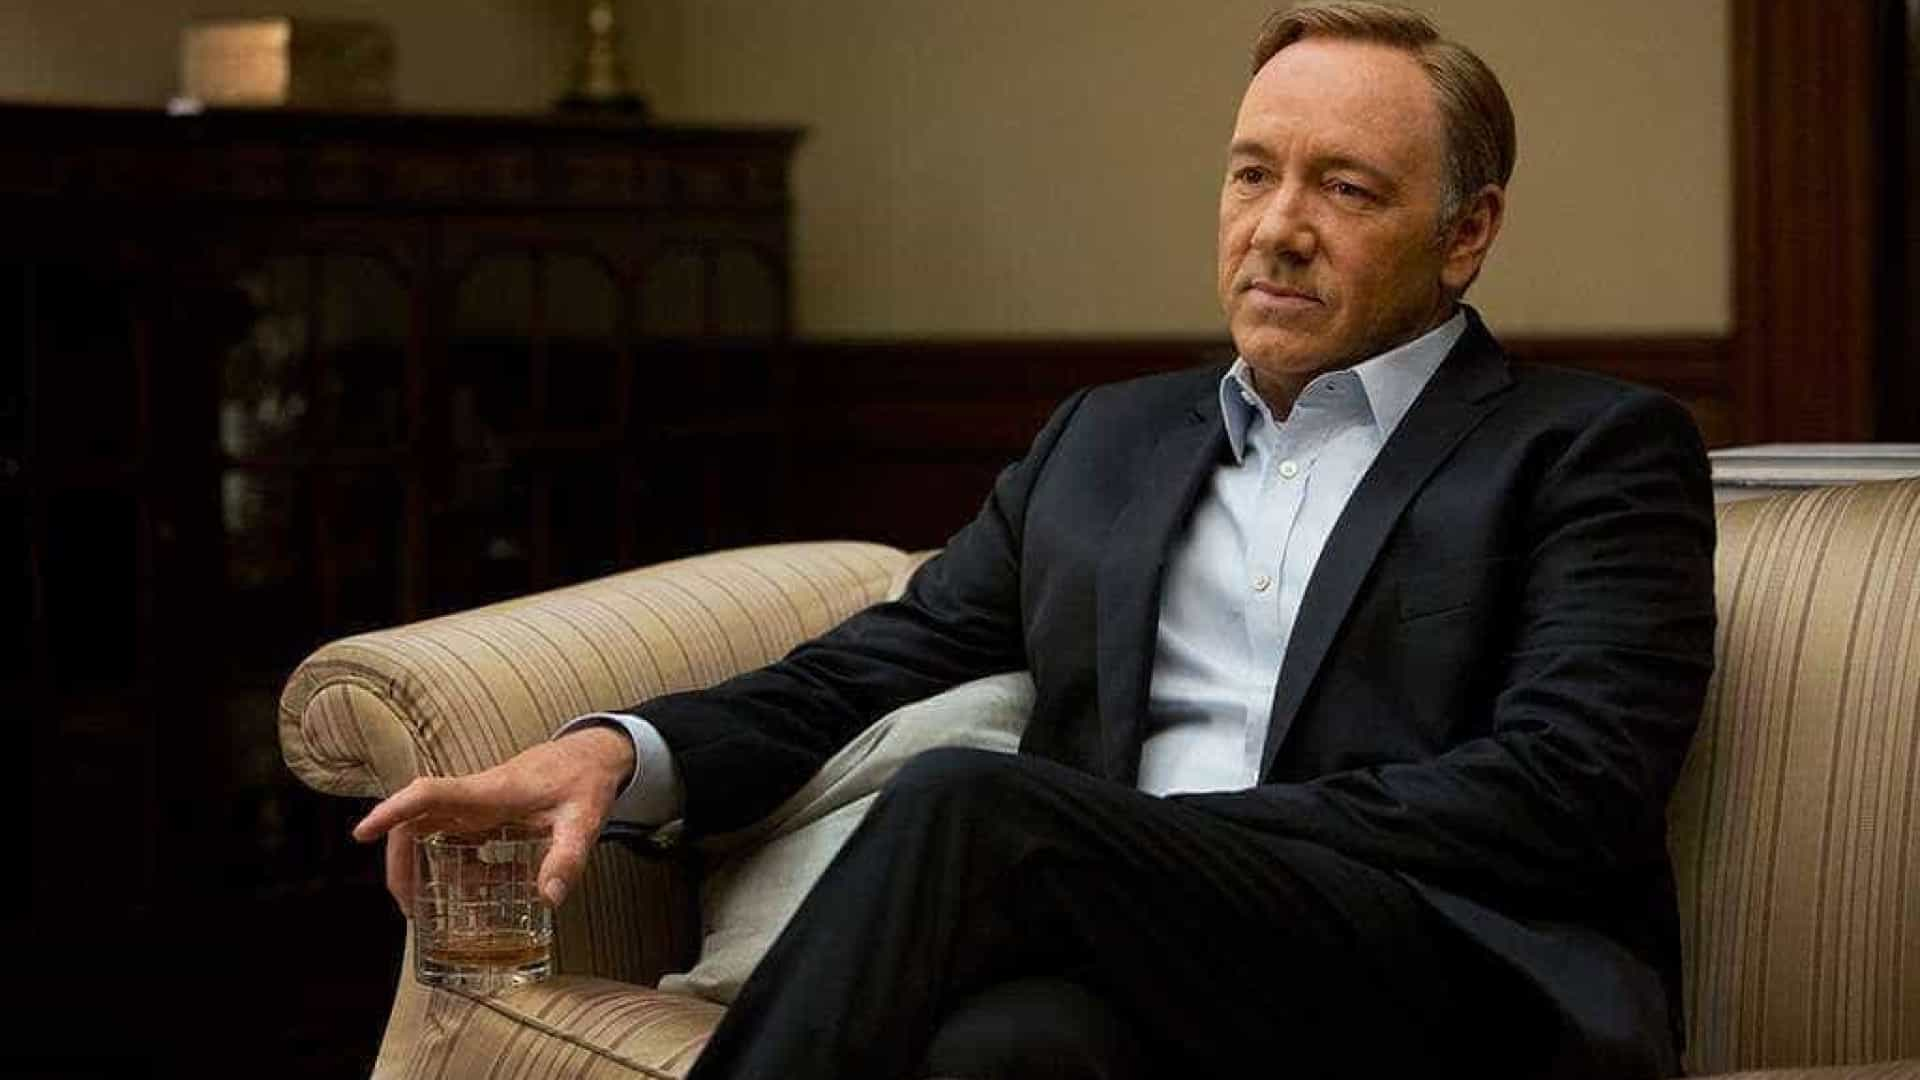 Kevin Spacey pede desculpa por abuso sexual e assume